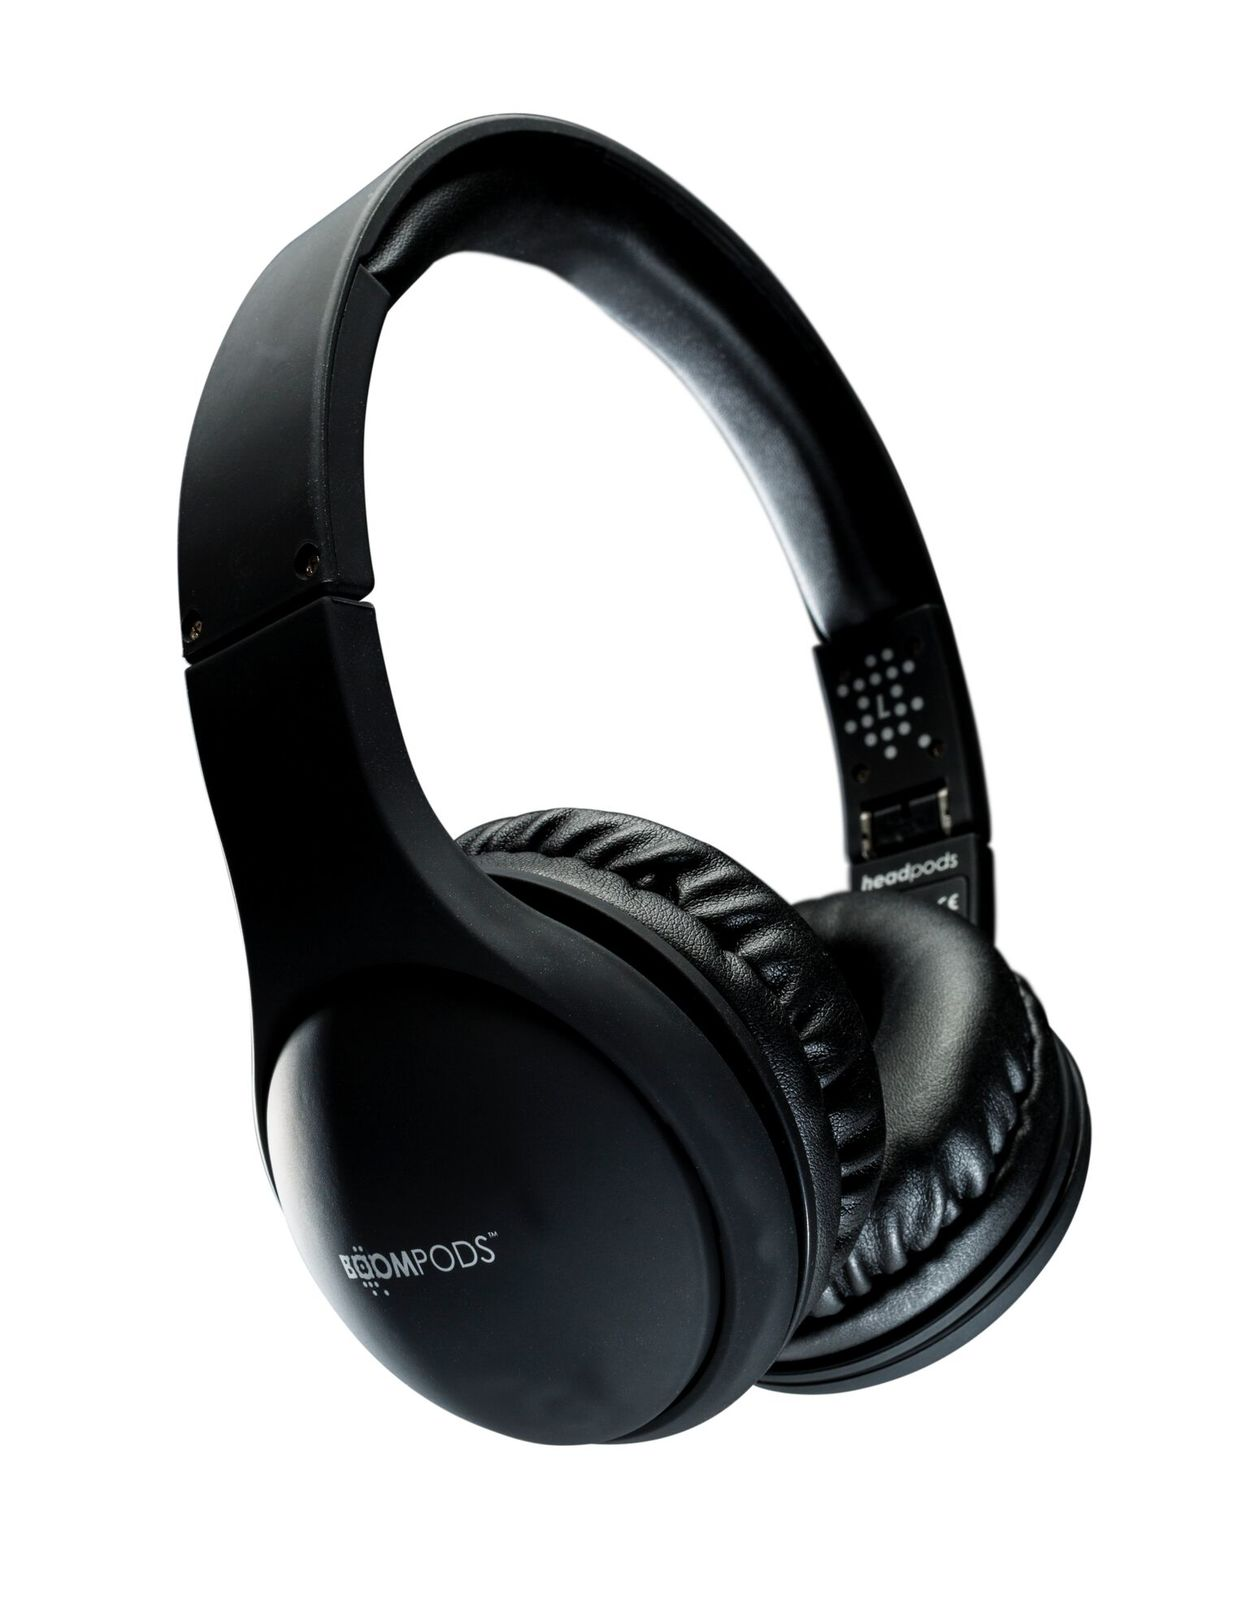 BOOMPODS Headpod Wireless Headphone image